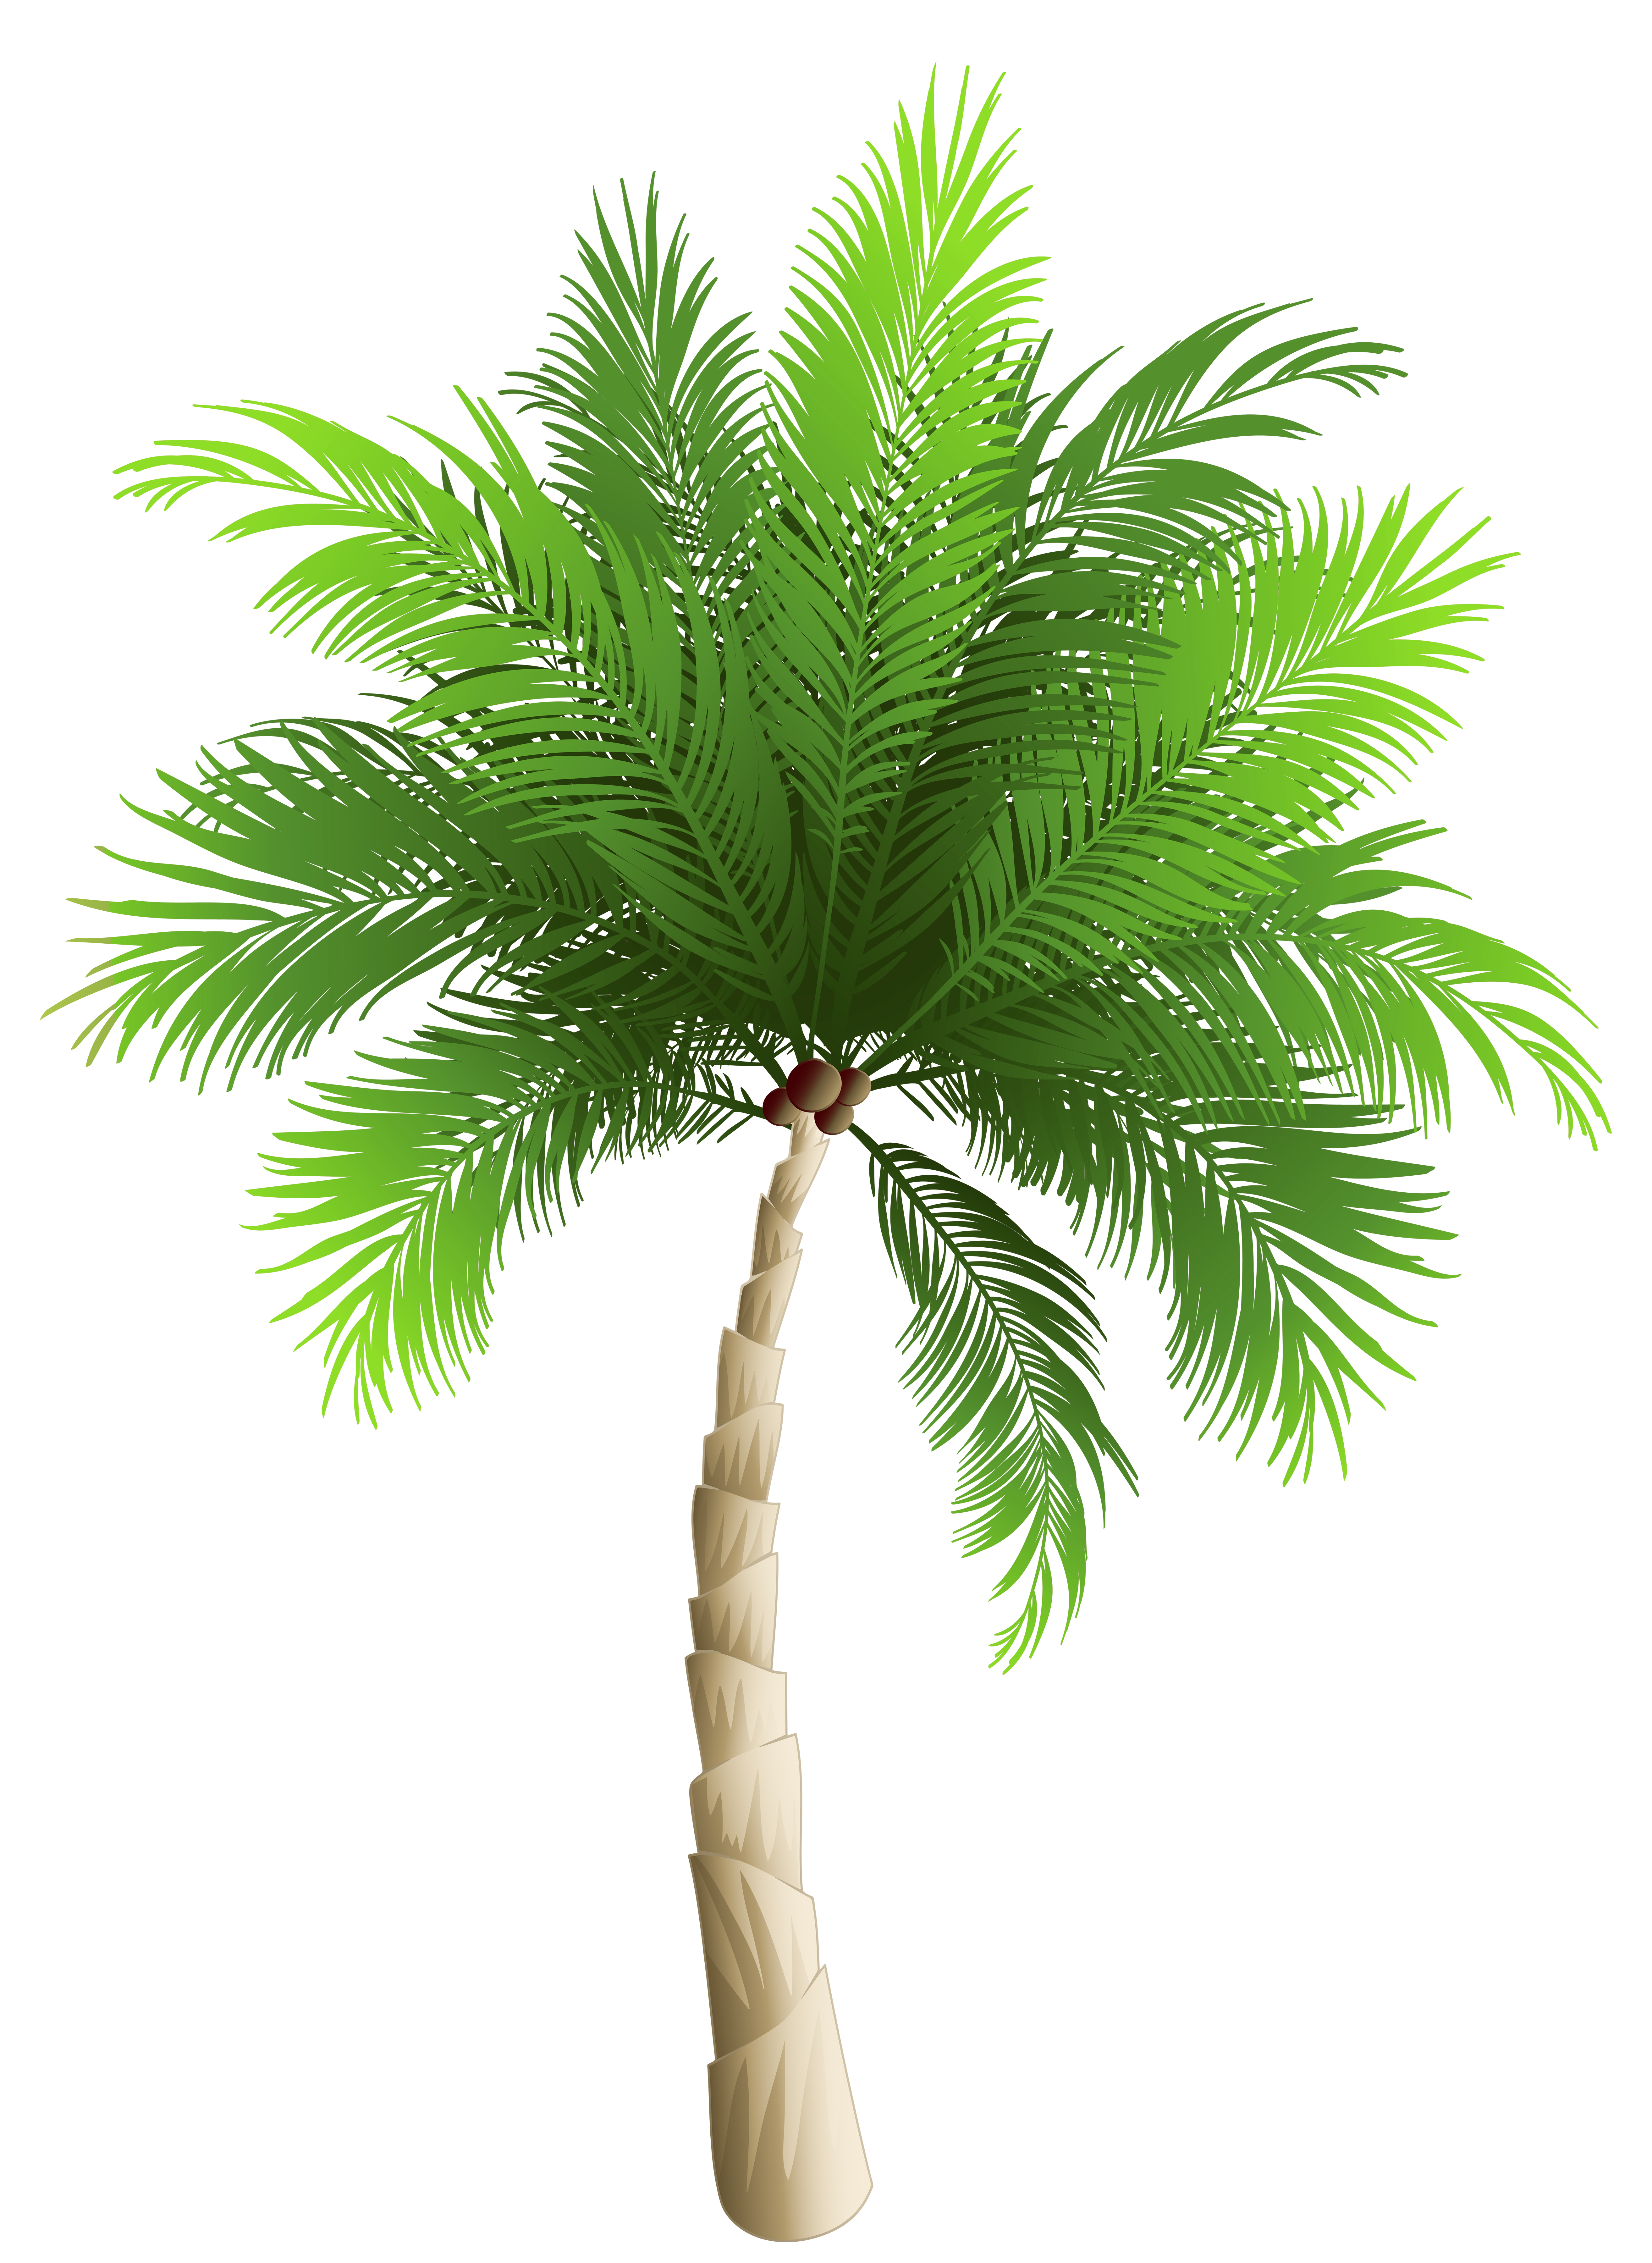 Palm tree clipart png vector royalty free library Palm Tree PNG Clipart Image | Gallery Yopriceville - High-Quality ... vector royalty free library